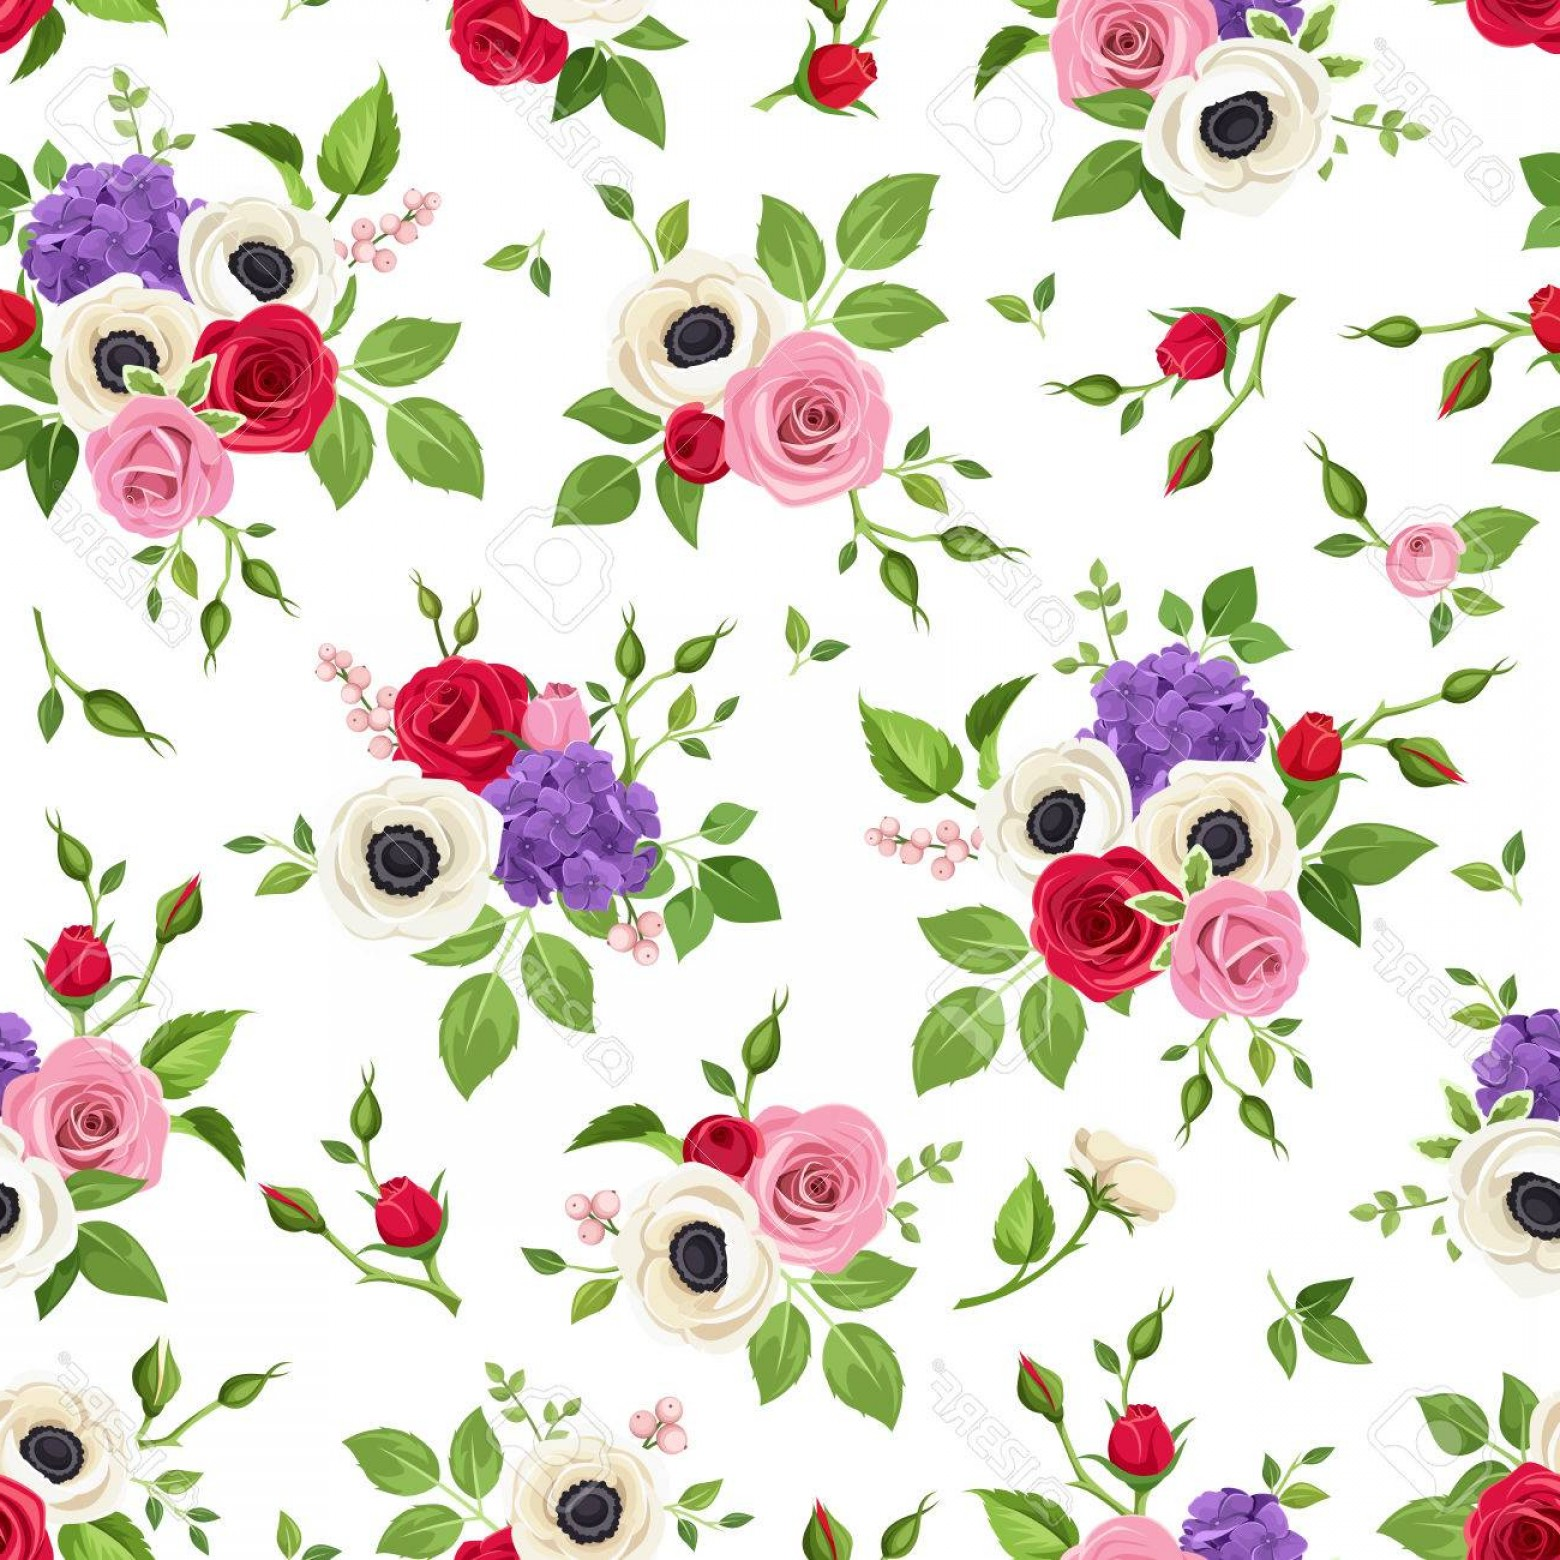 Purple Green And White Vector: Photostock Vector Vector Seamless Pattern With Red Pink White And Purple Roses Anemones And Hydrangea Flowers And Gree